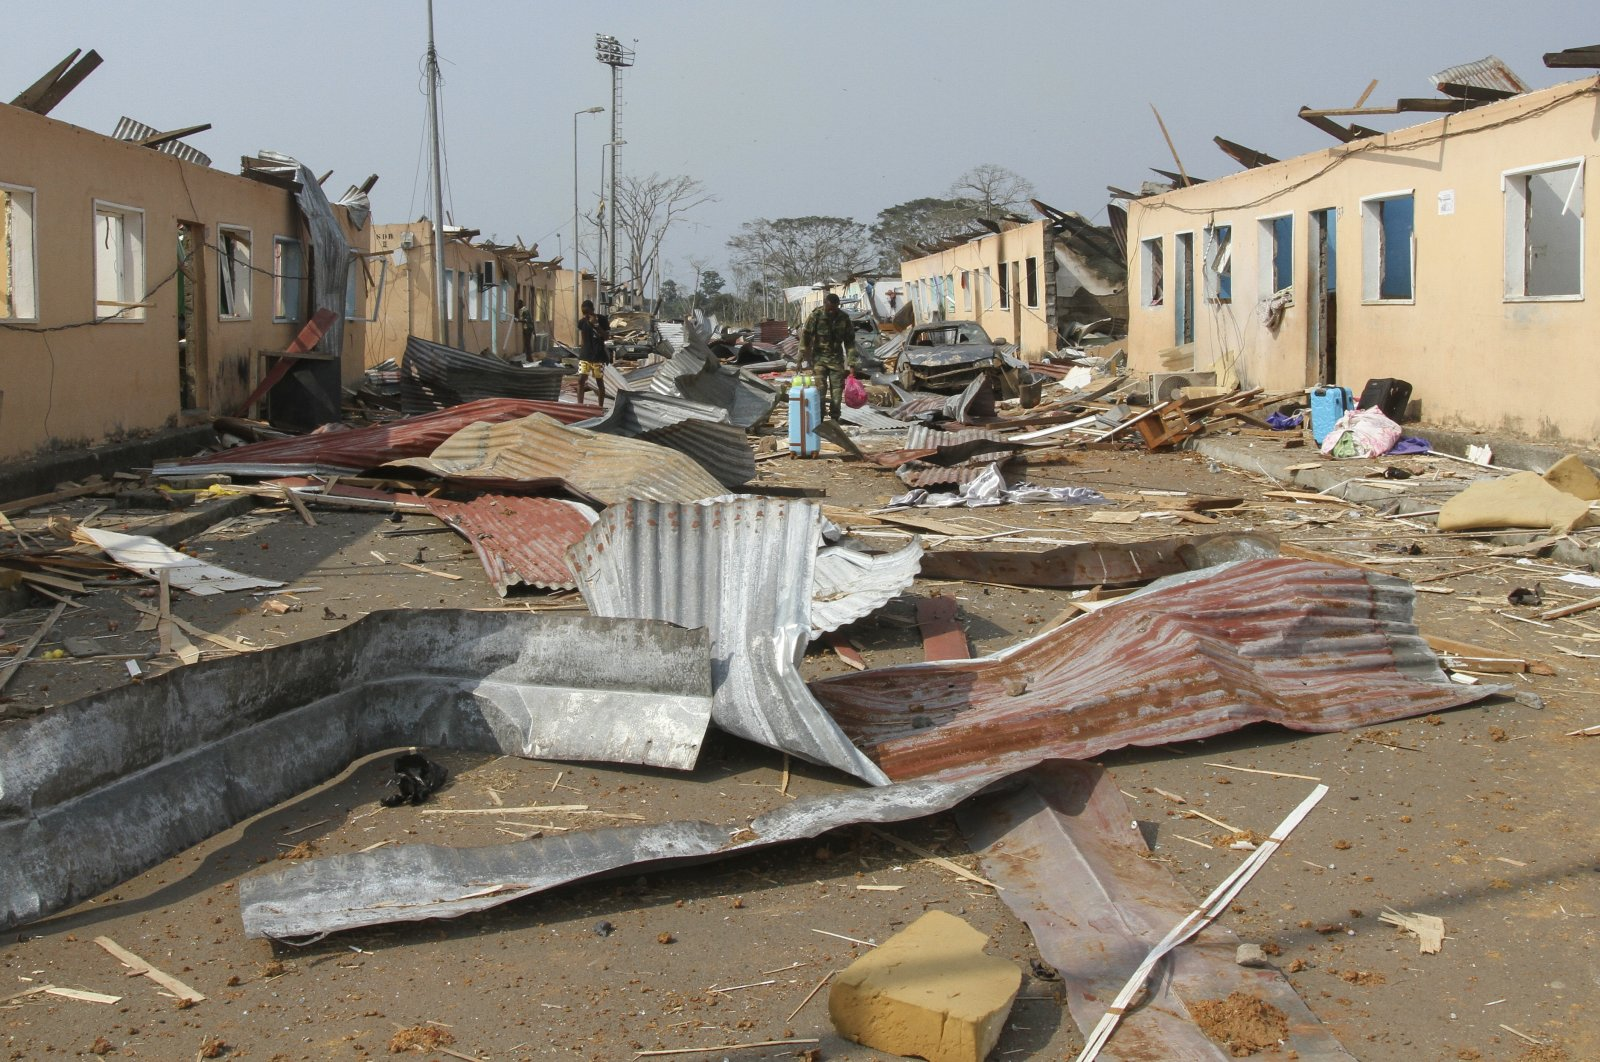 A general view of the aftermath of an explosion in Bata, Equatorial Guinea, March 8, 2021. (EPA-EFE Photo)